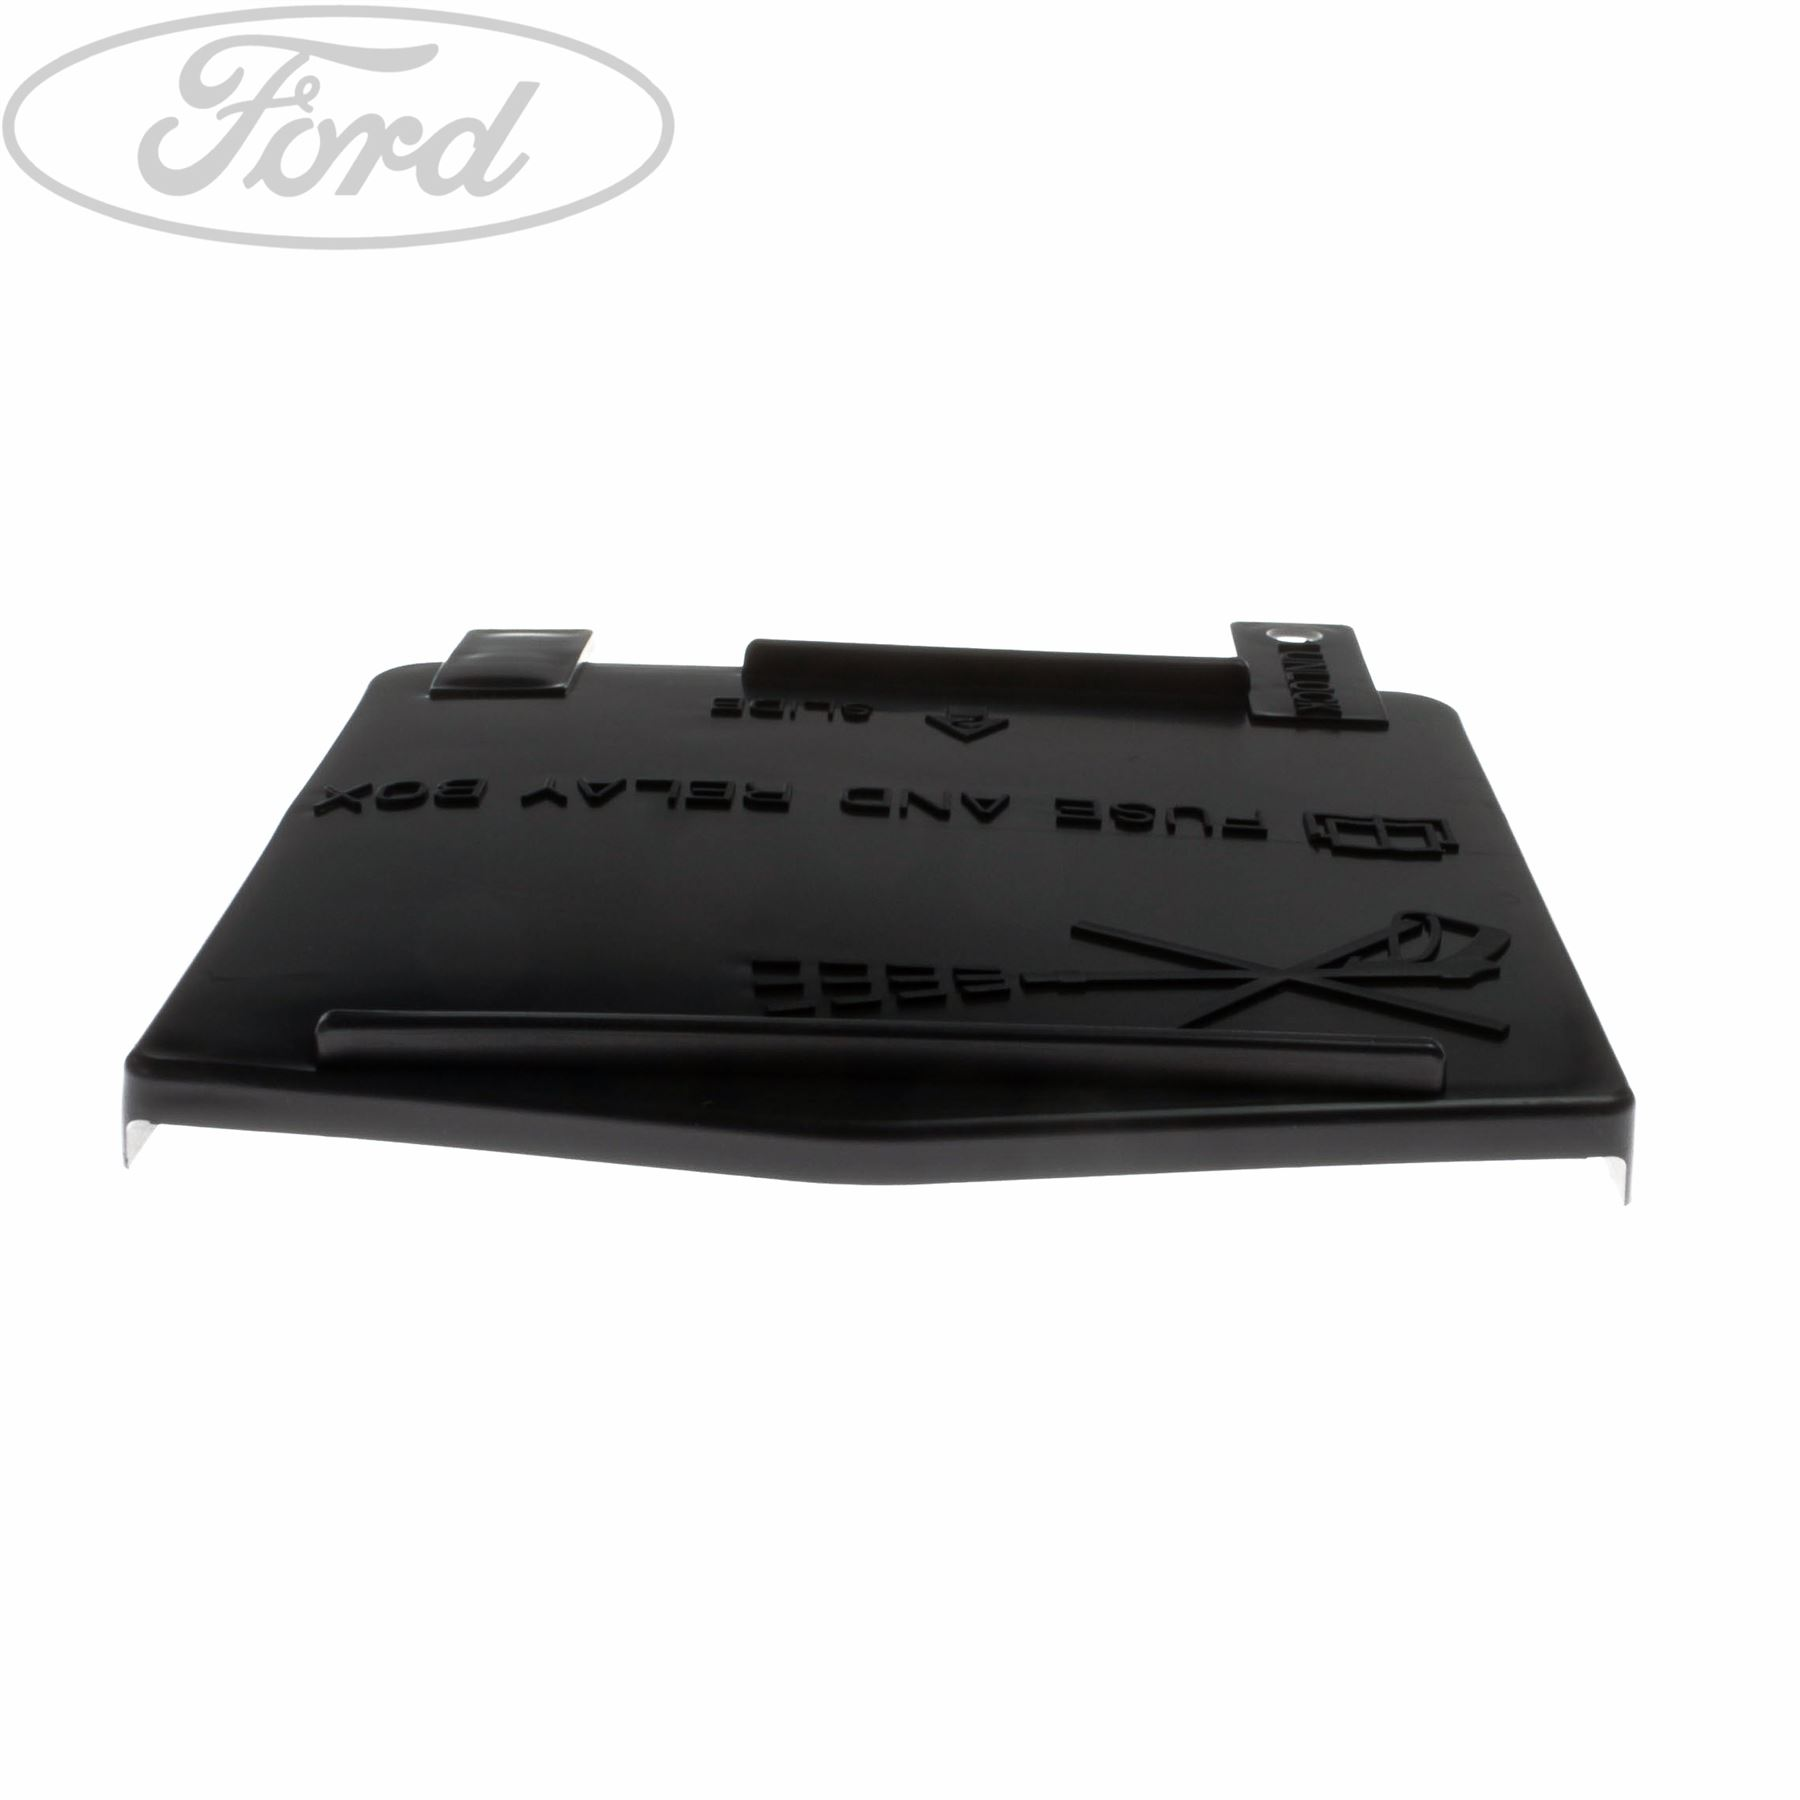 Genuine Ford Ka Additional Fuse Box Cover 1633886 Ebay Location